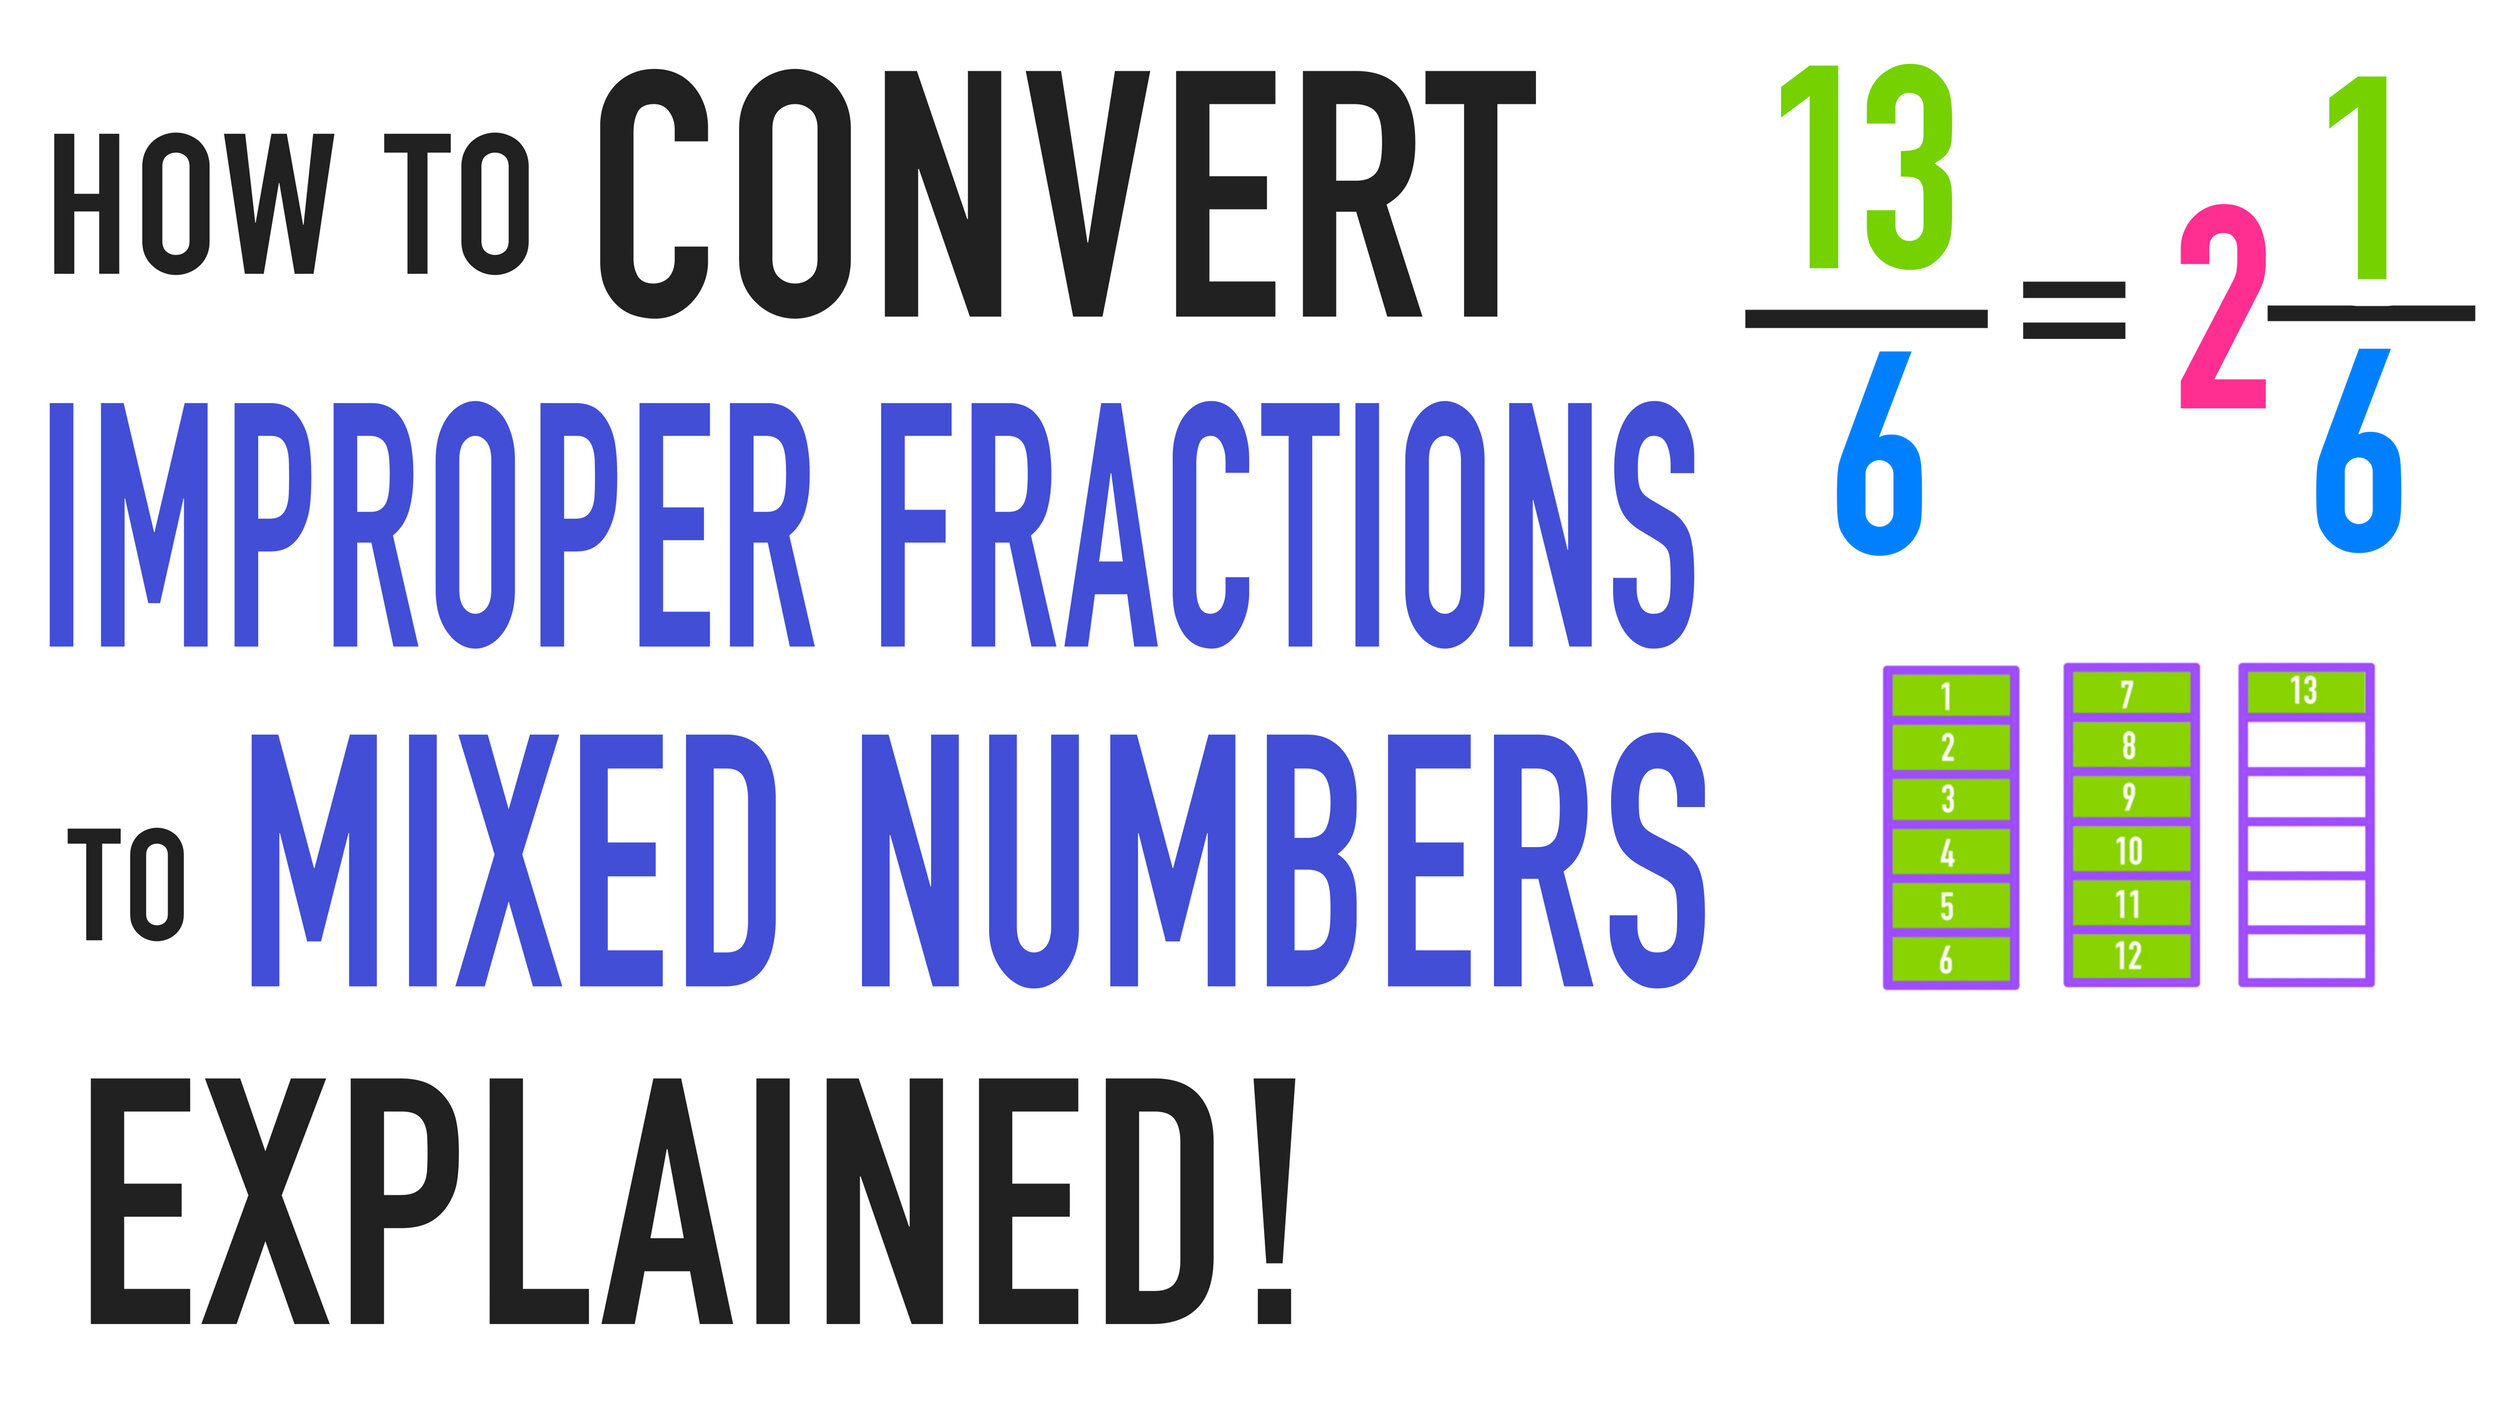 medium resolution of How to Convert Improper Fractions to Mixed Numbers Explained! — Mashup Math